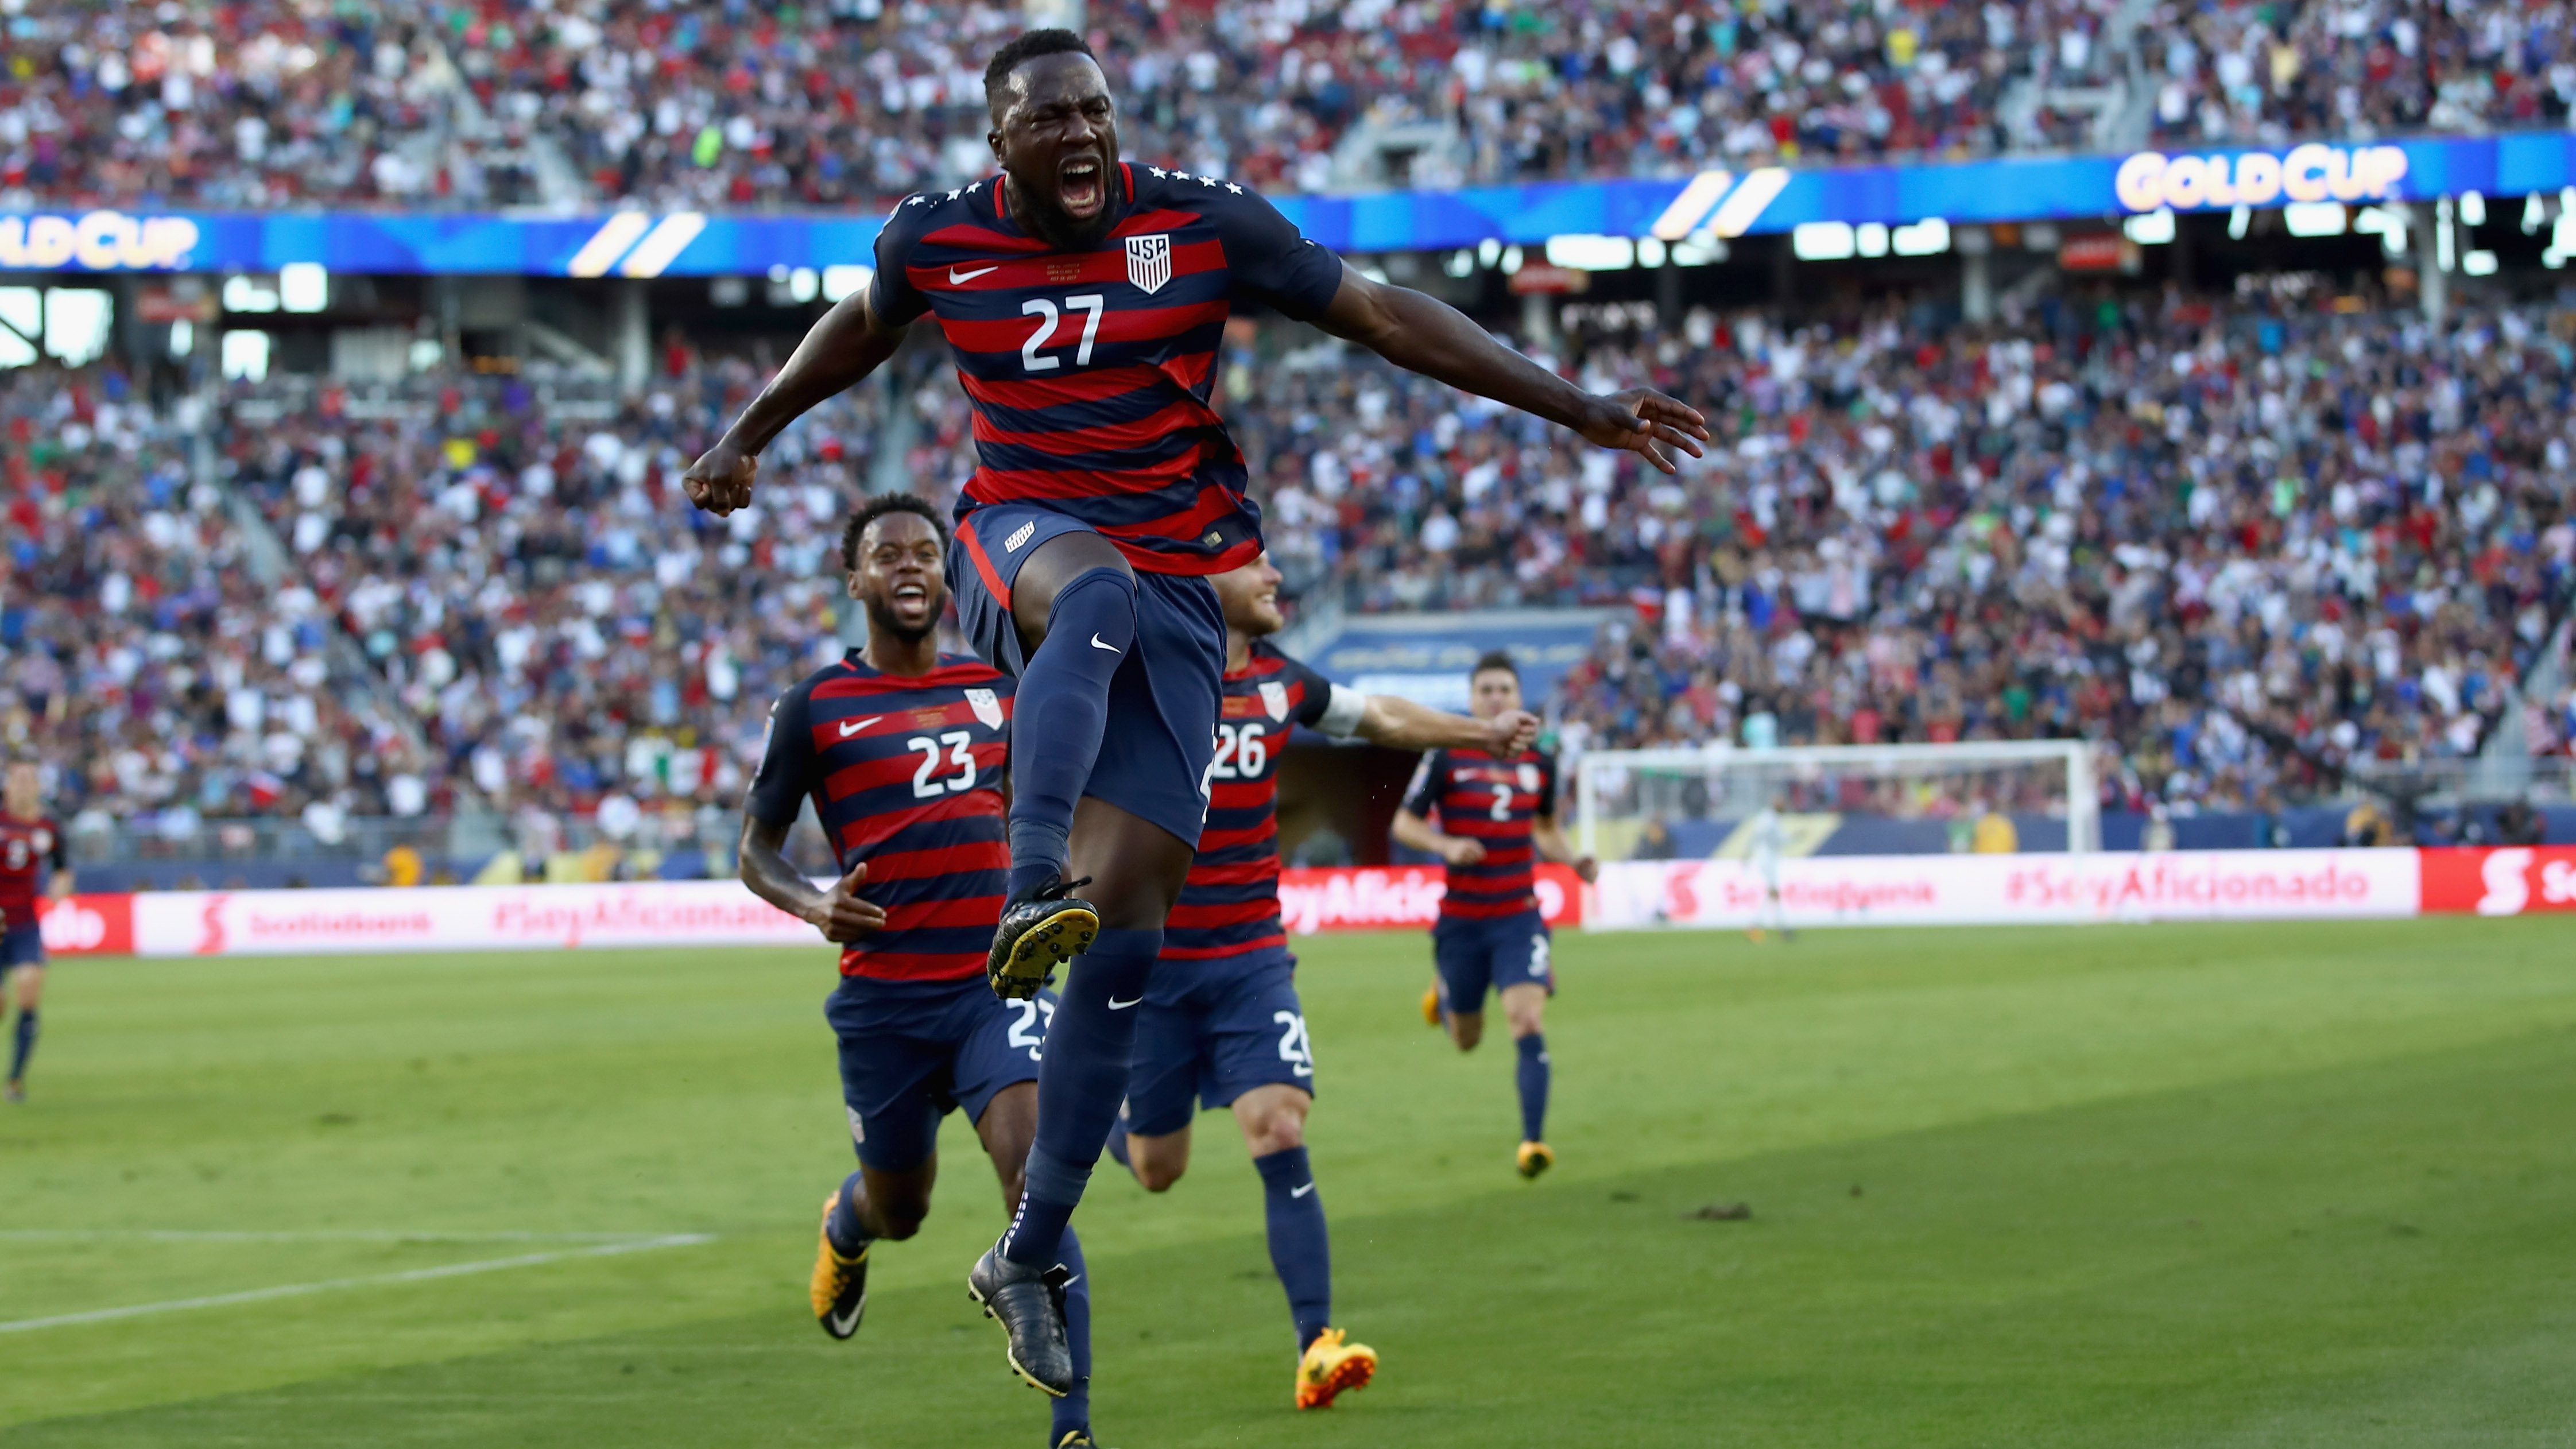 United States v Jamaica: Final – 2017 CONCACAF Gold Cup